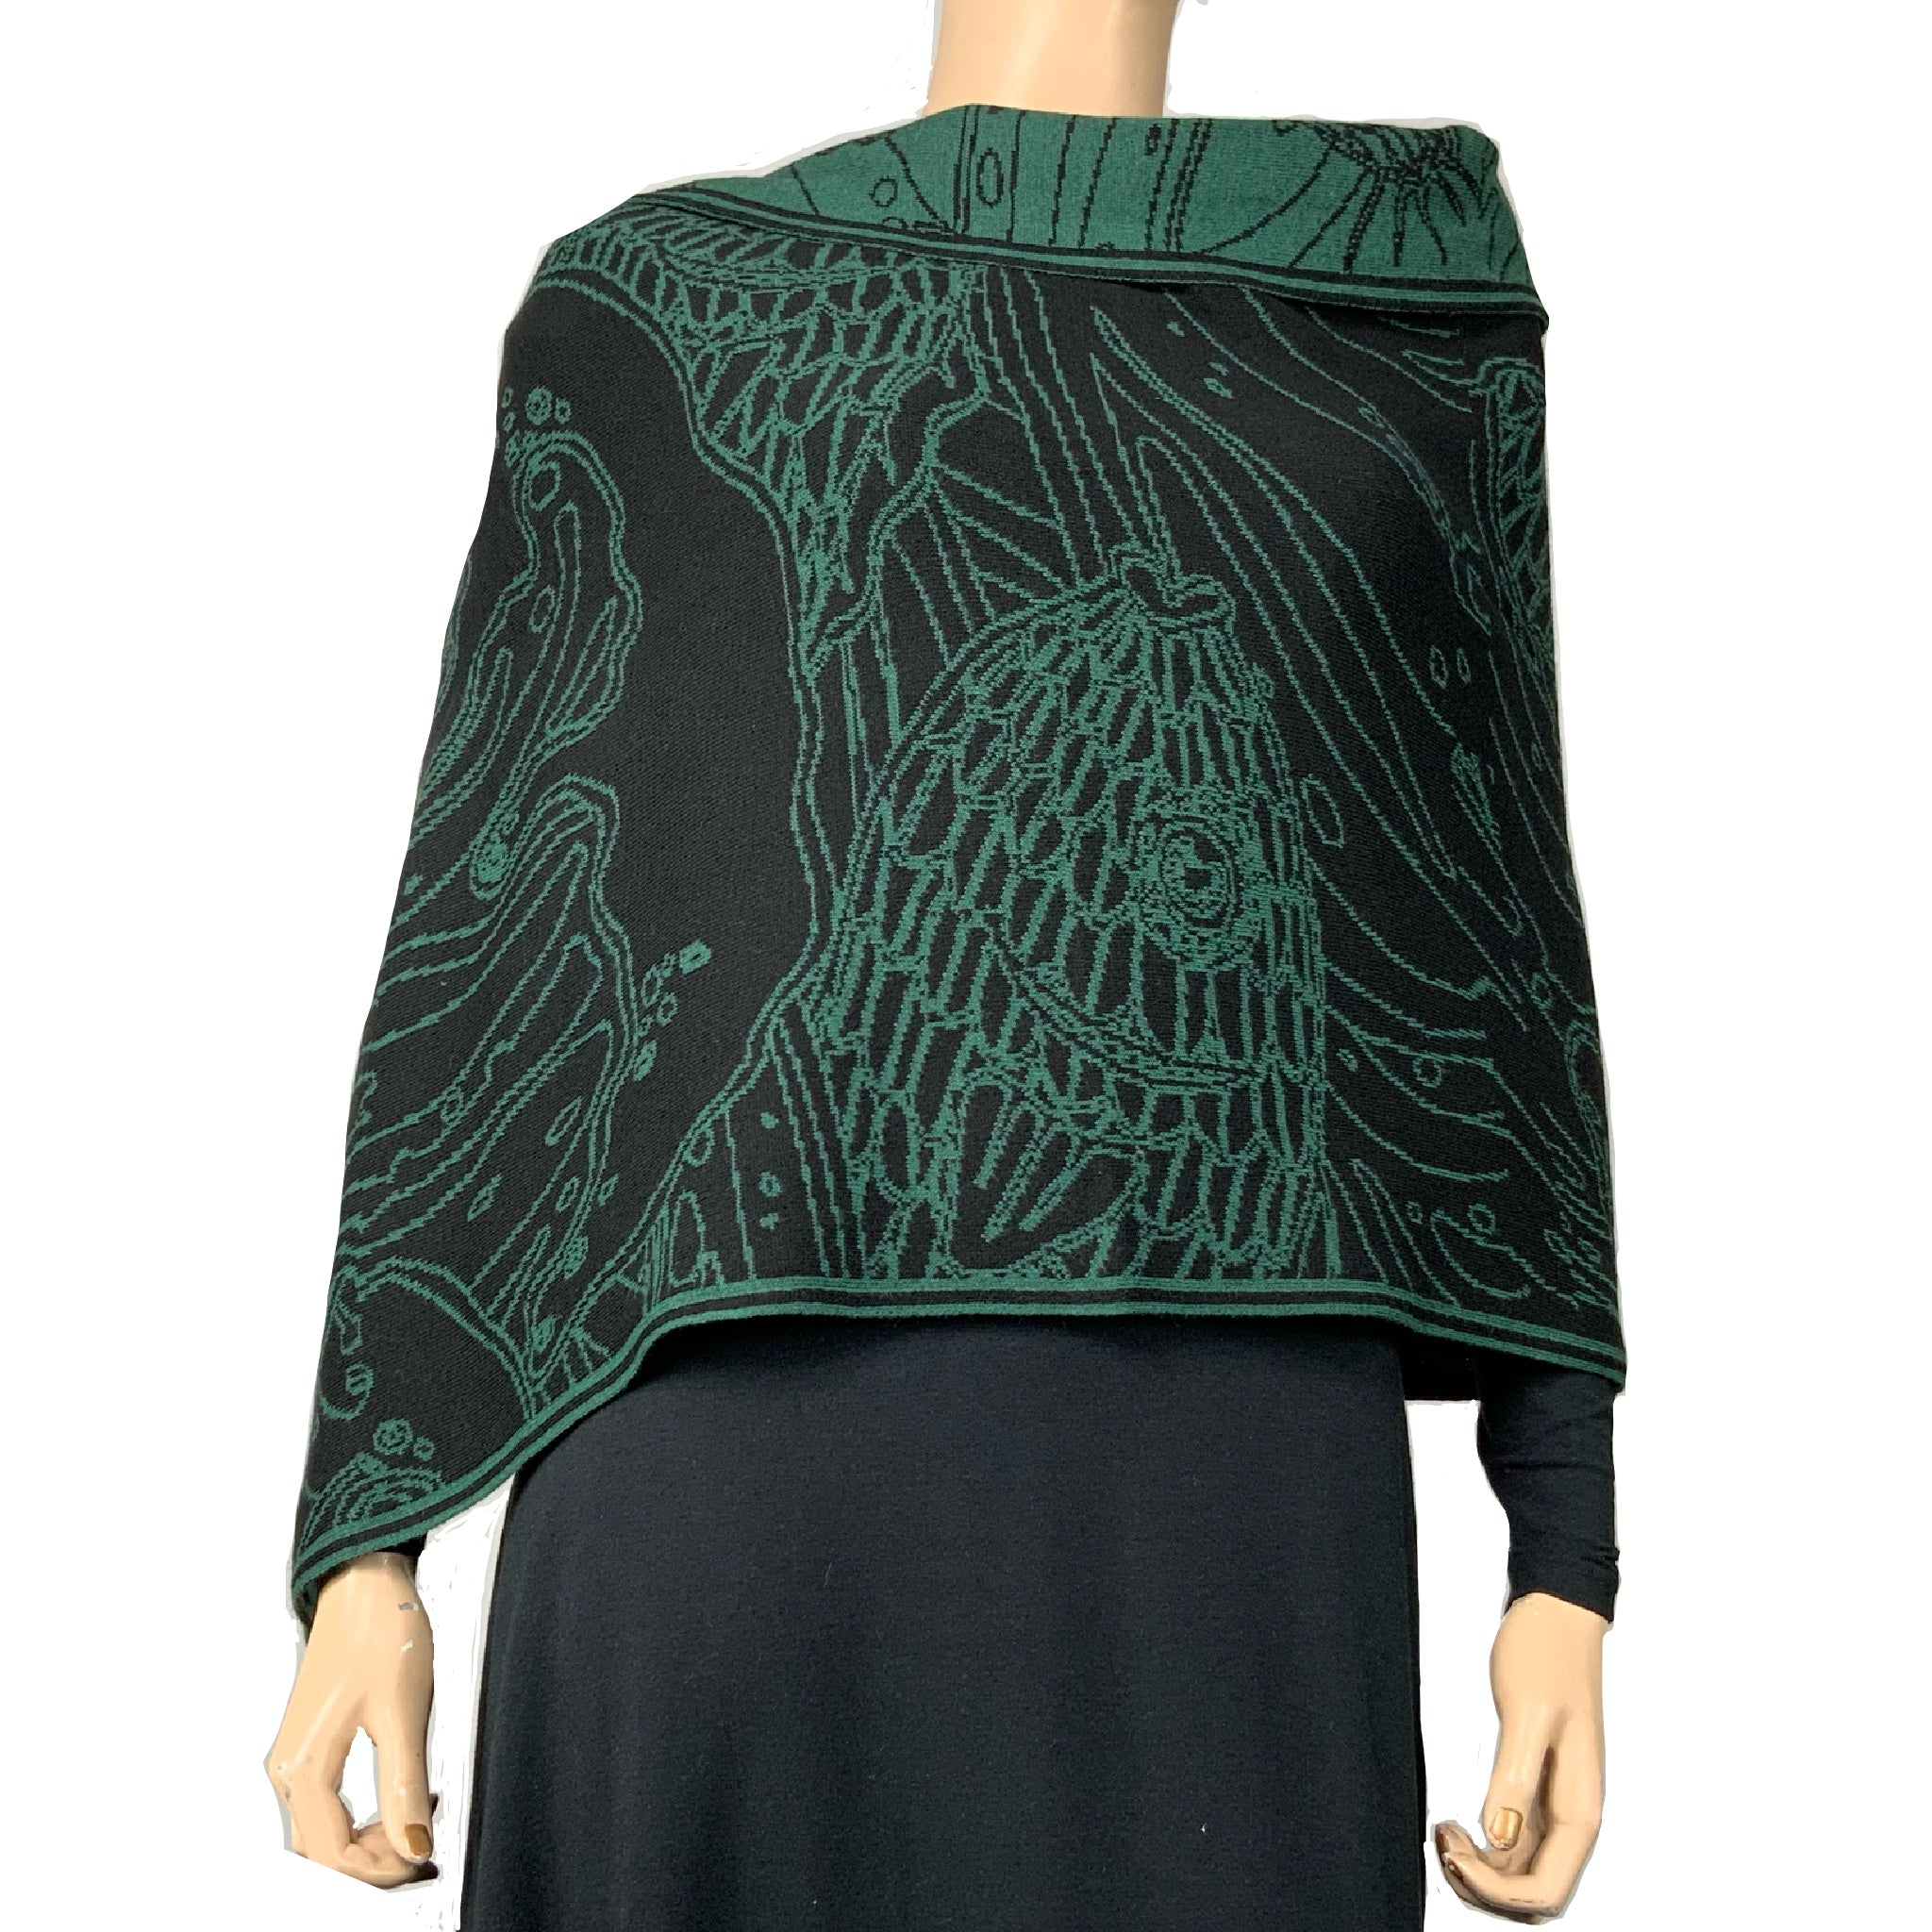 Ocean Shawl Scarf Wrap Black and Hunter Green